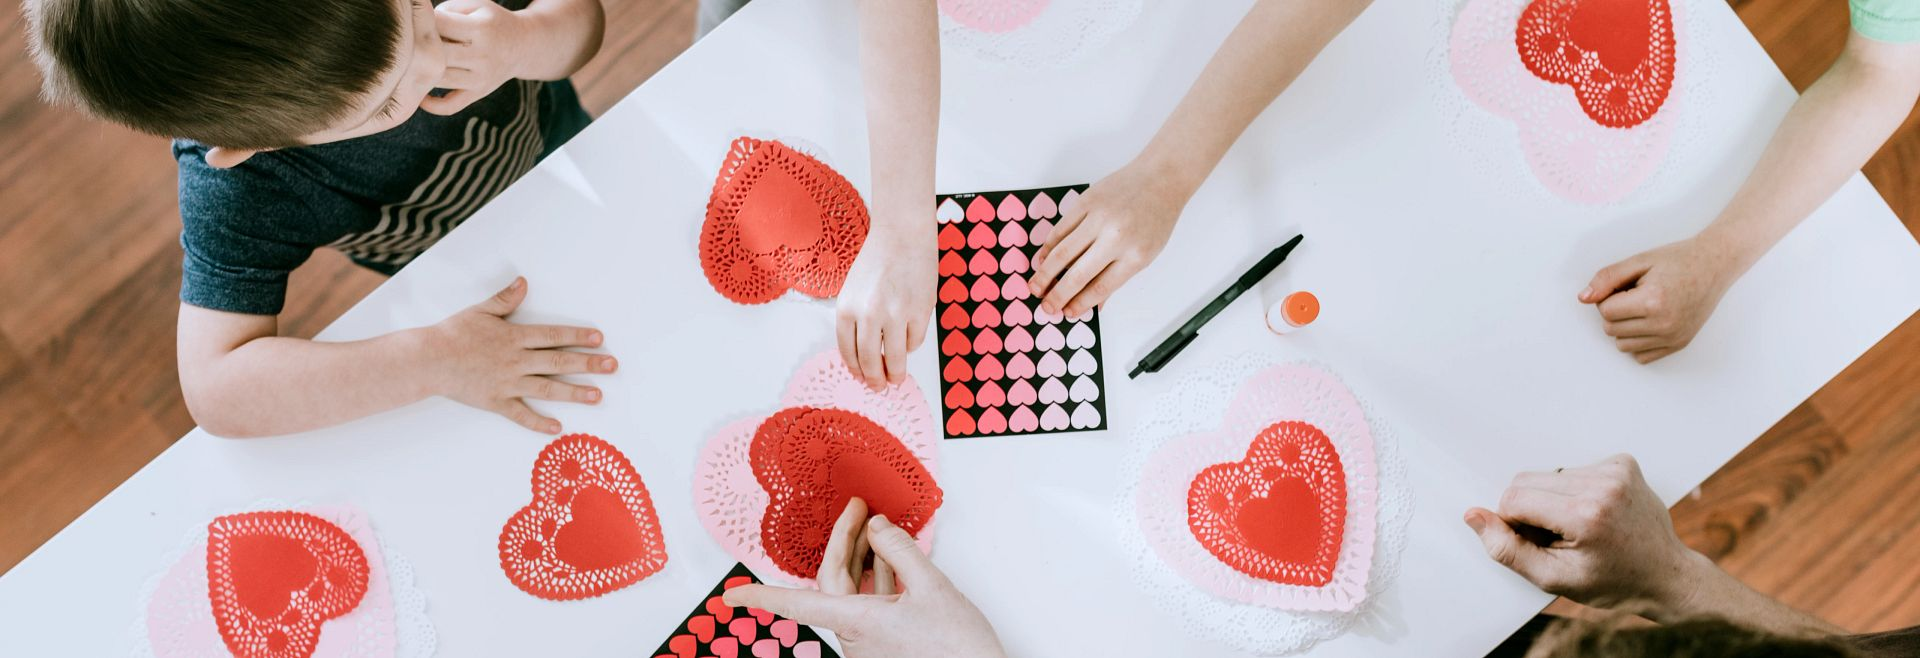 Valentine's Day Craft Painting Hearts Getty Images